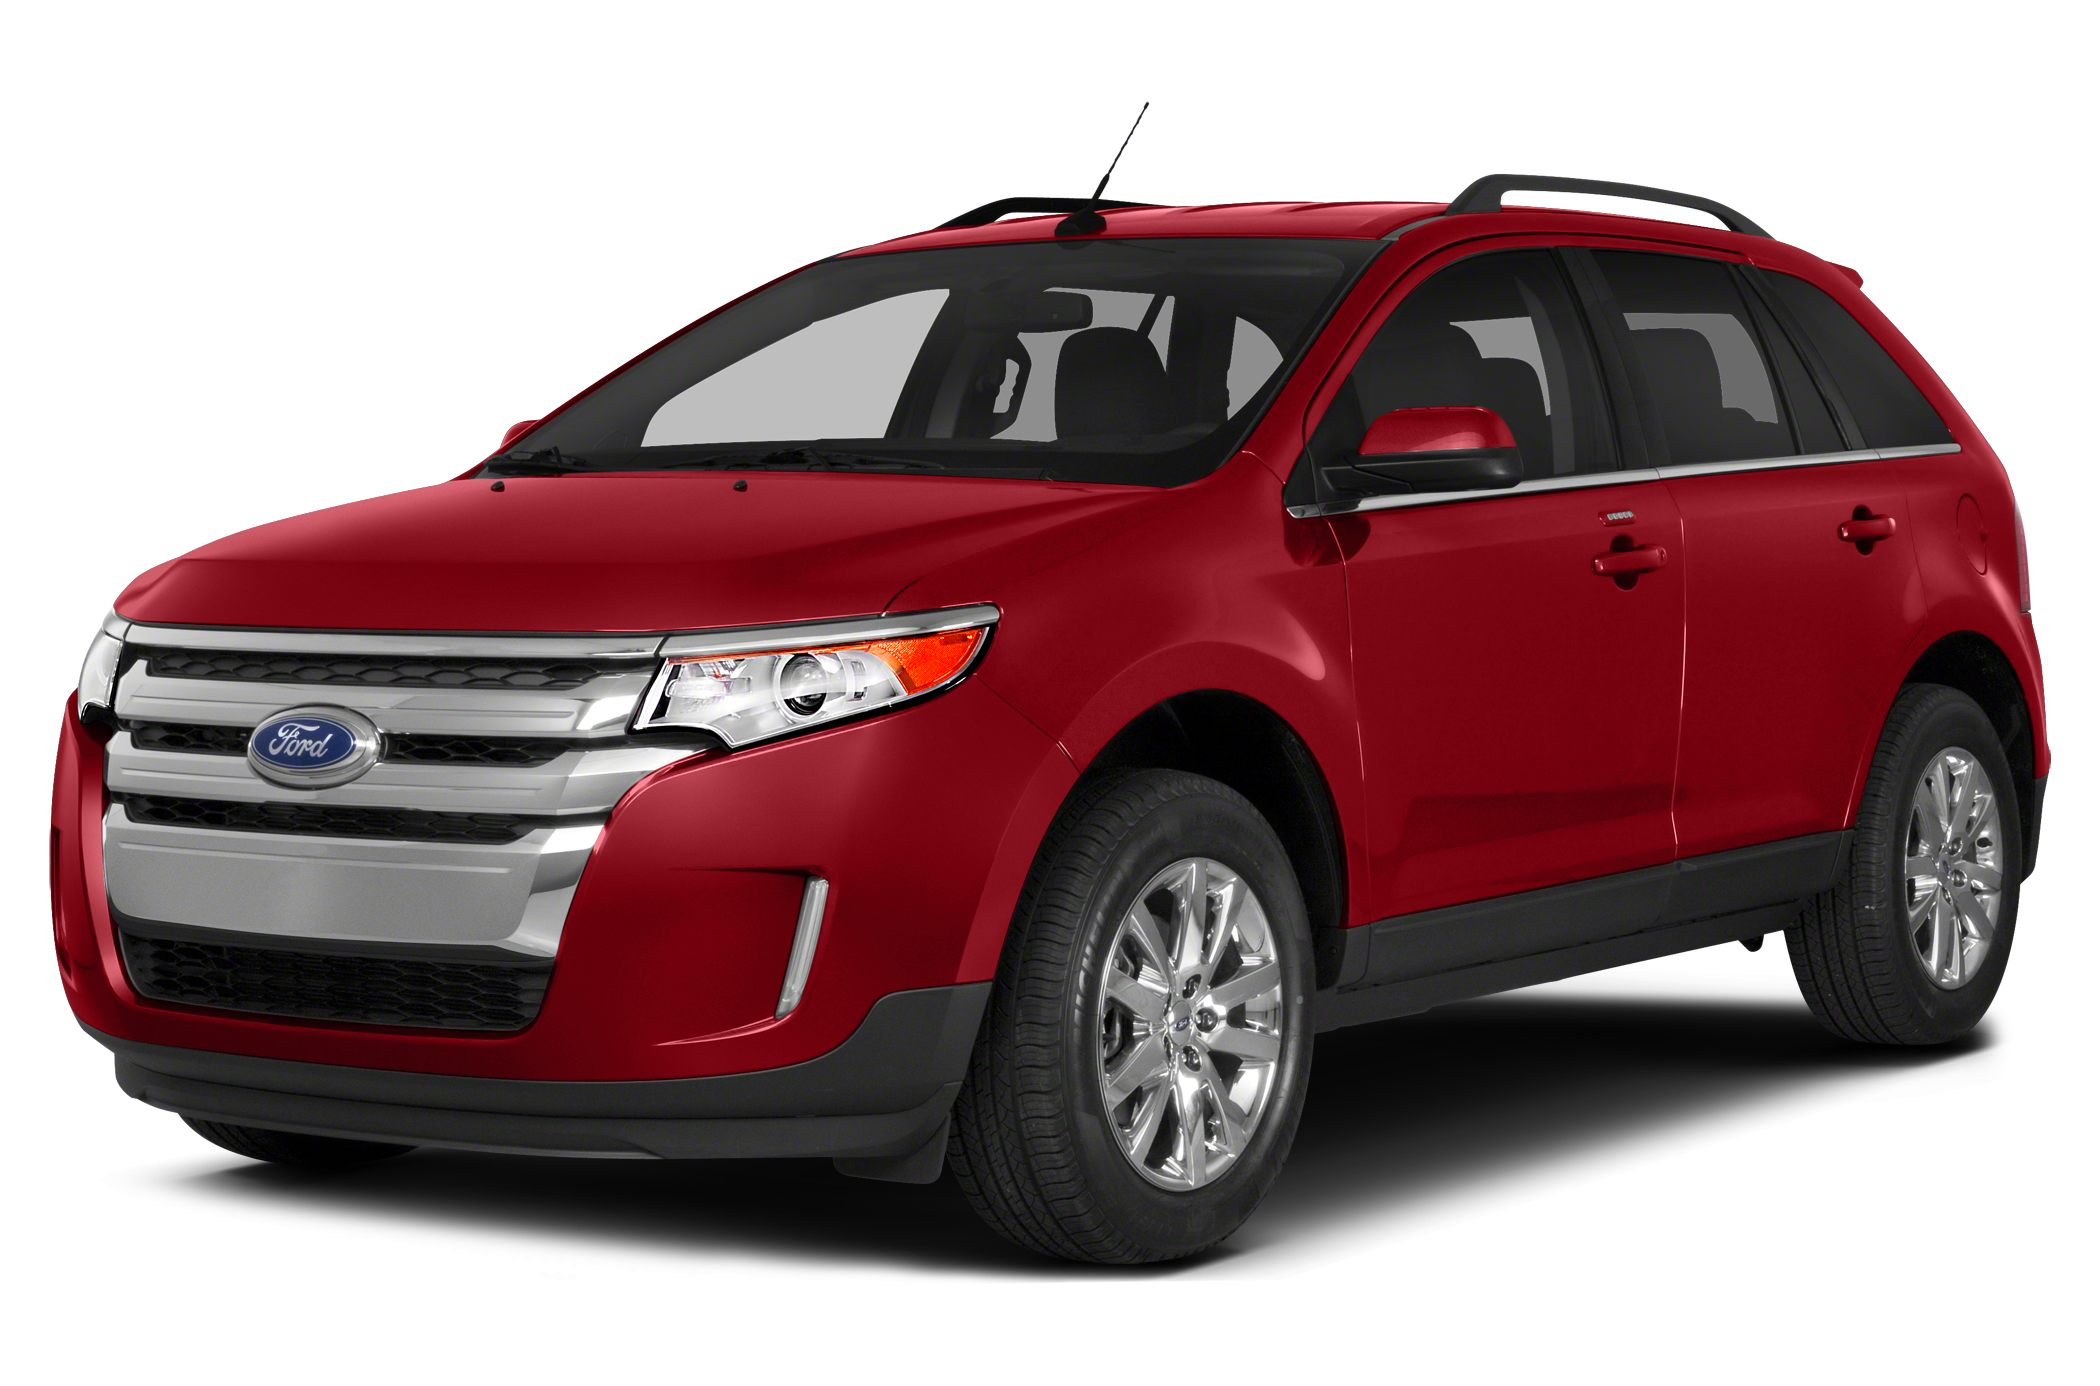 2014 Ford Edge SEL CARFAX 1-Owner SEL trim EPA 25 MPG Hwy18 MPG City PRICED TO MOVE 900 belo